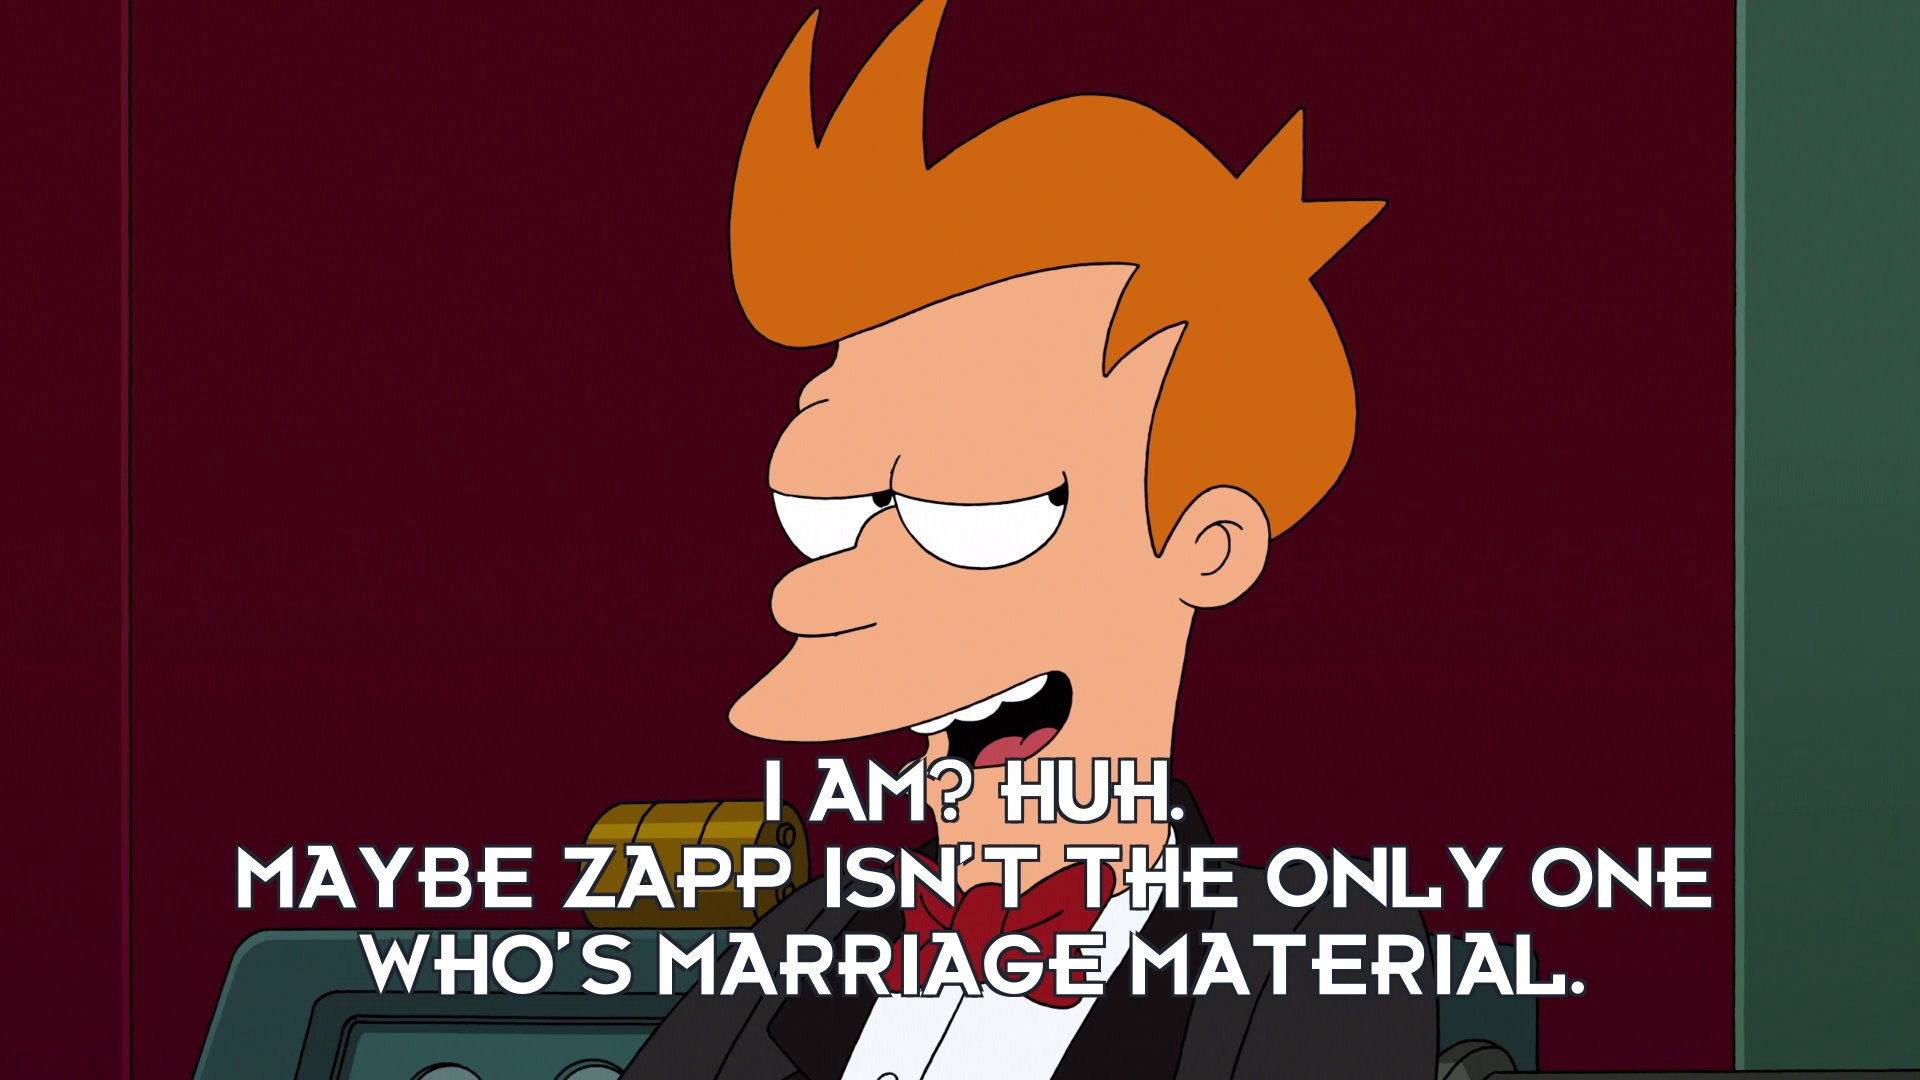 Philip J Fry: I am? Huh. Maybe Zapp isn't the only one who's marriage material.